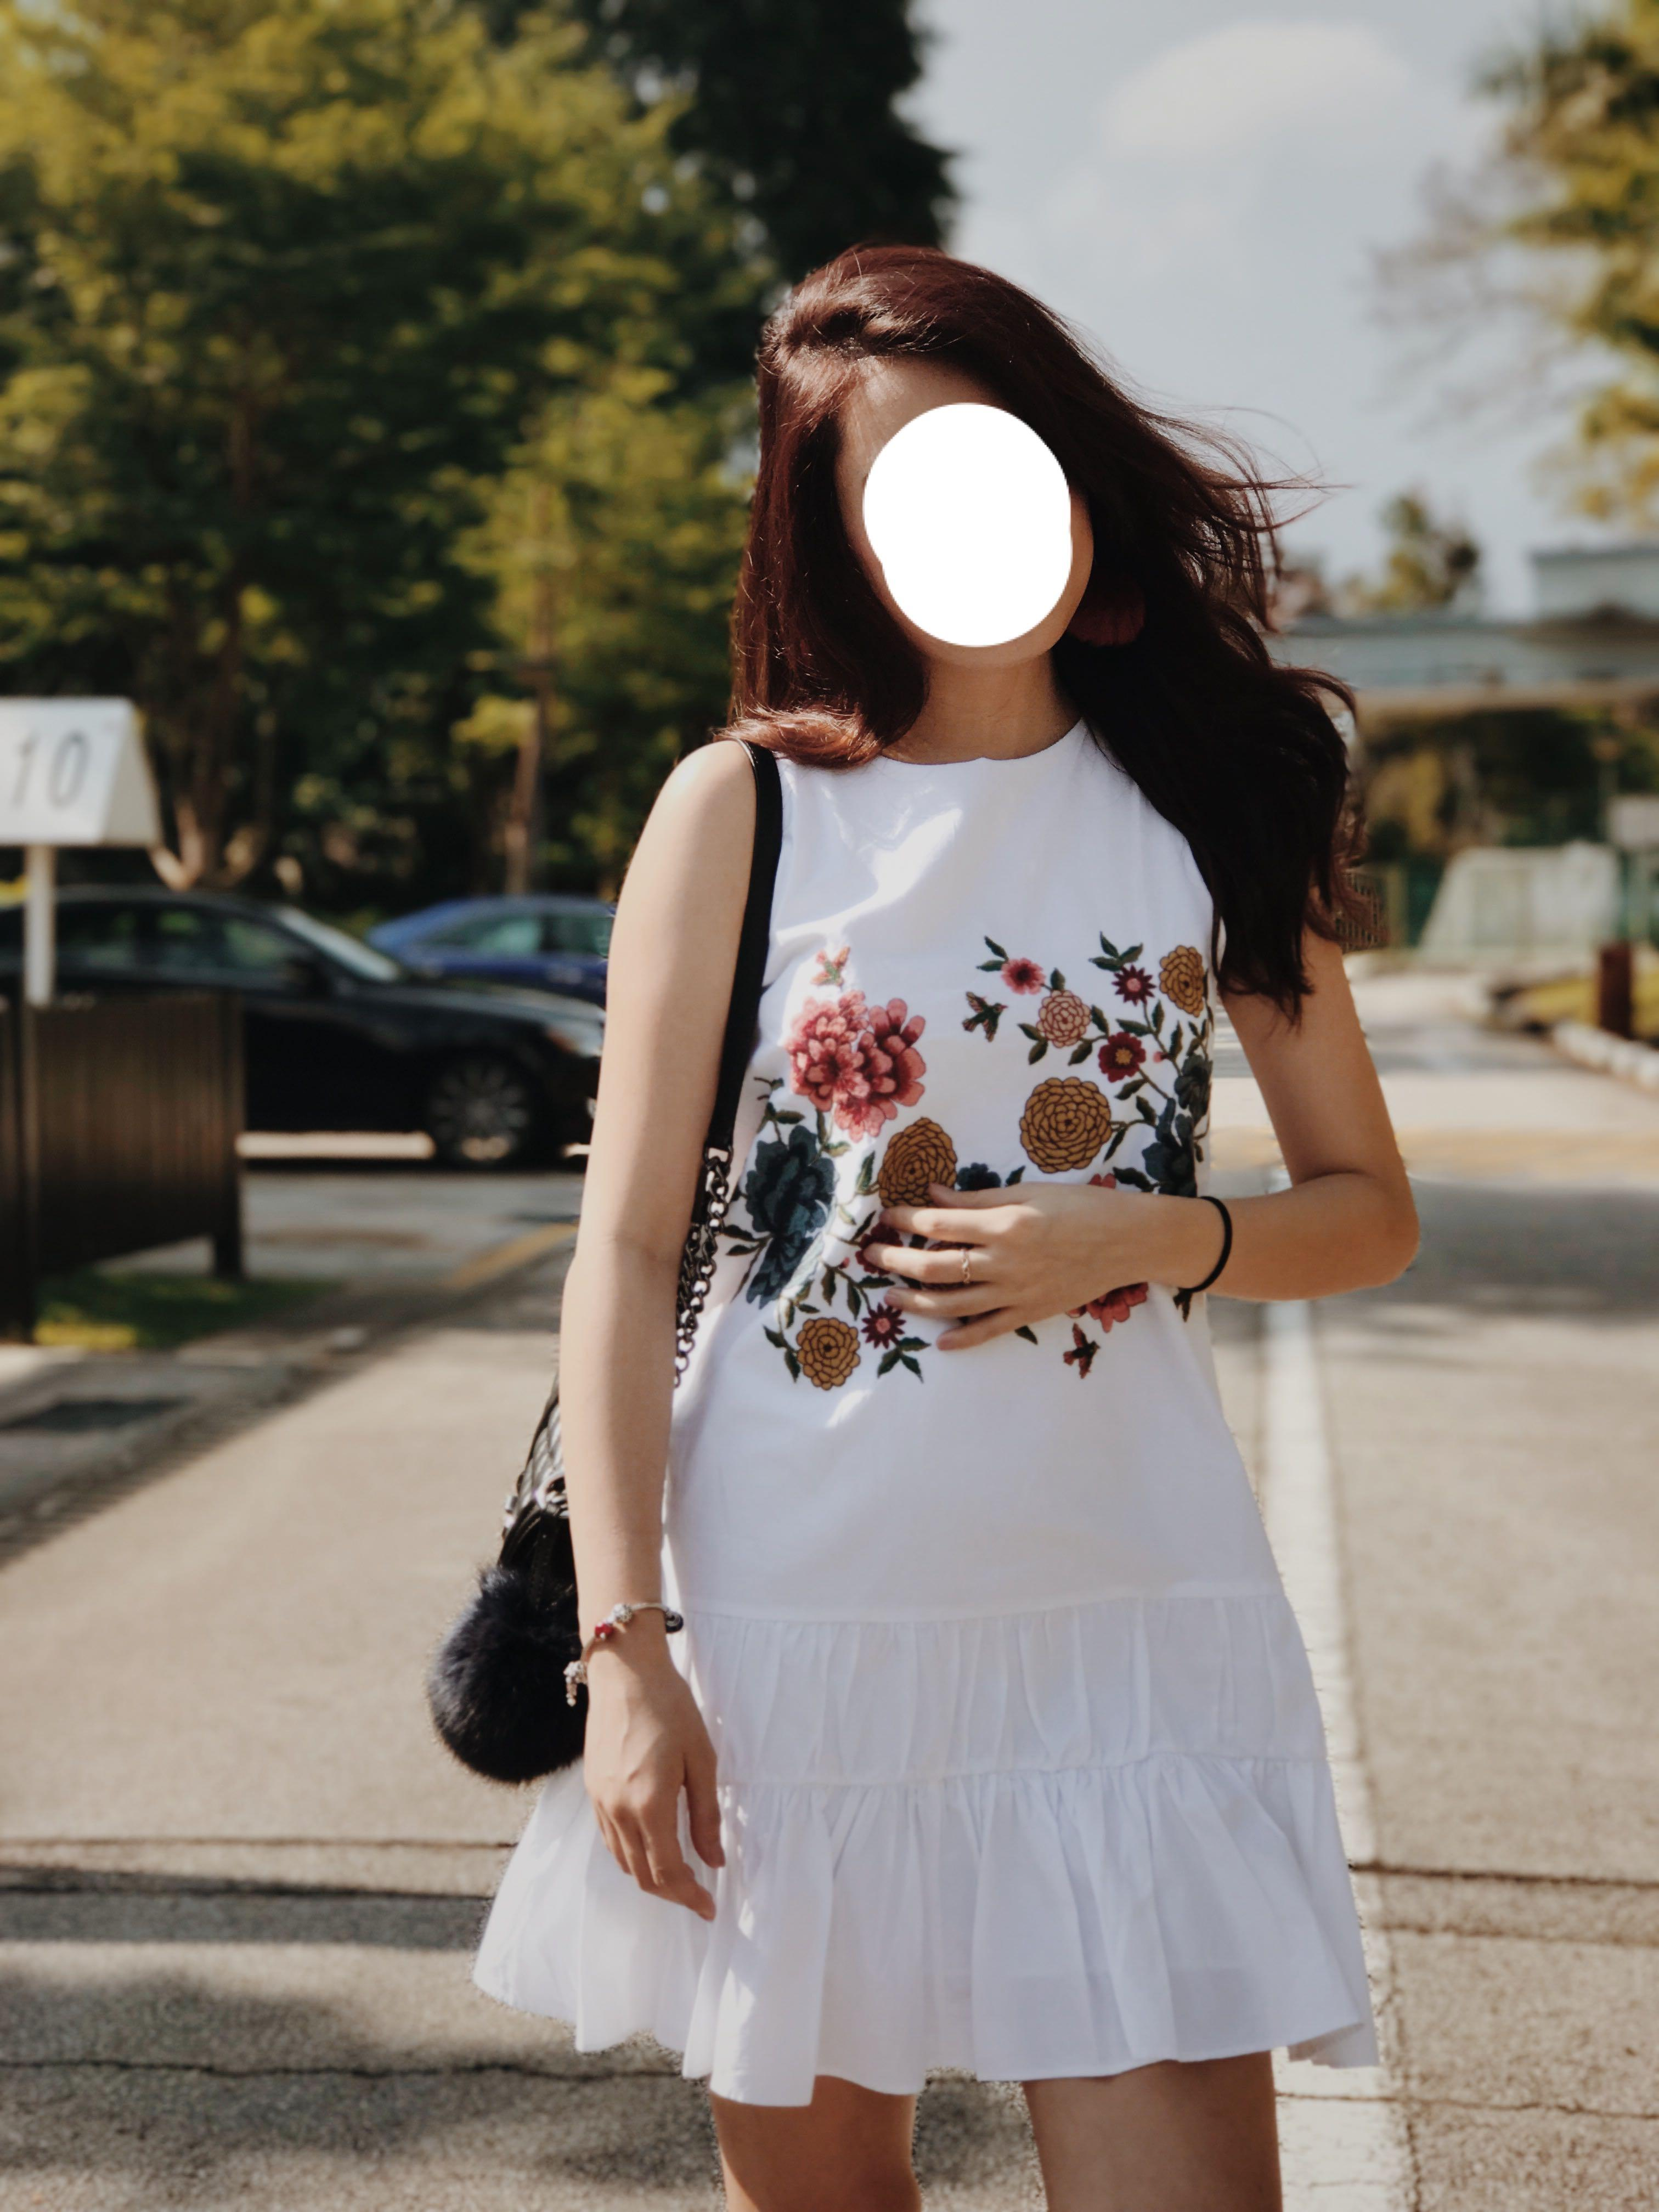 cd07e13835 ZARA white floral embroidered dress, Women's Fashion, Clothes ...